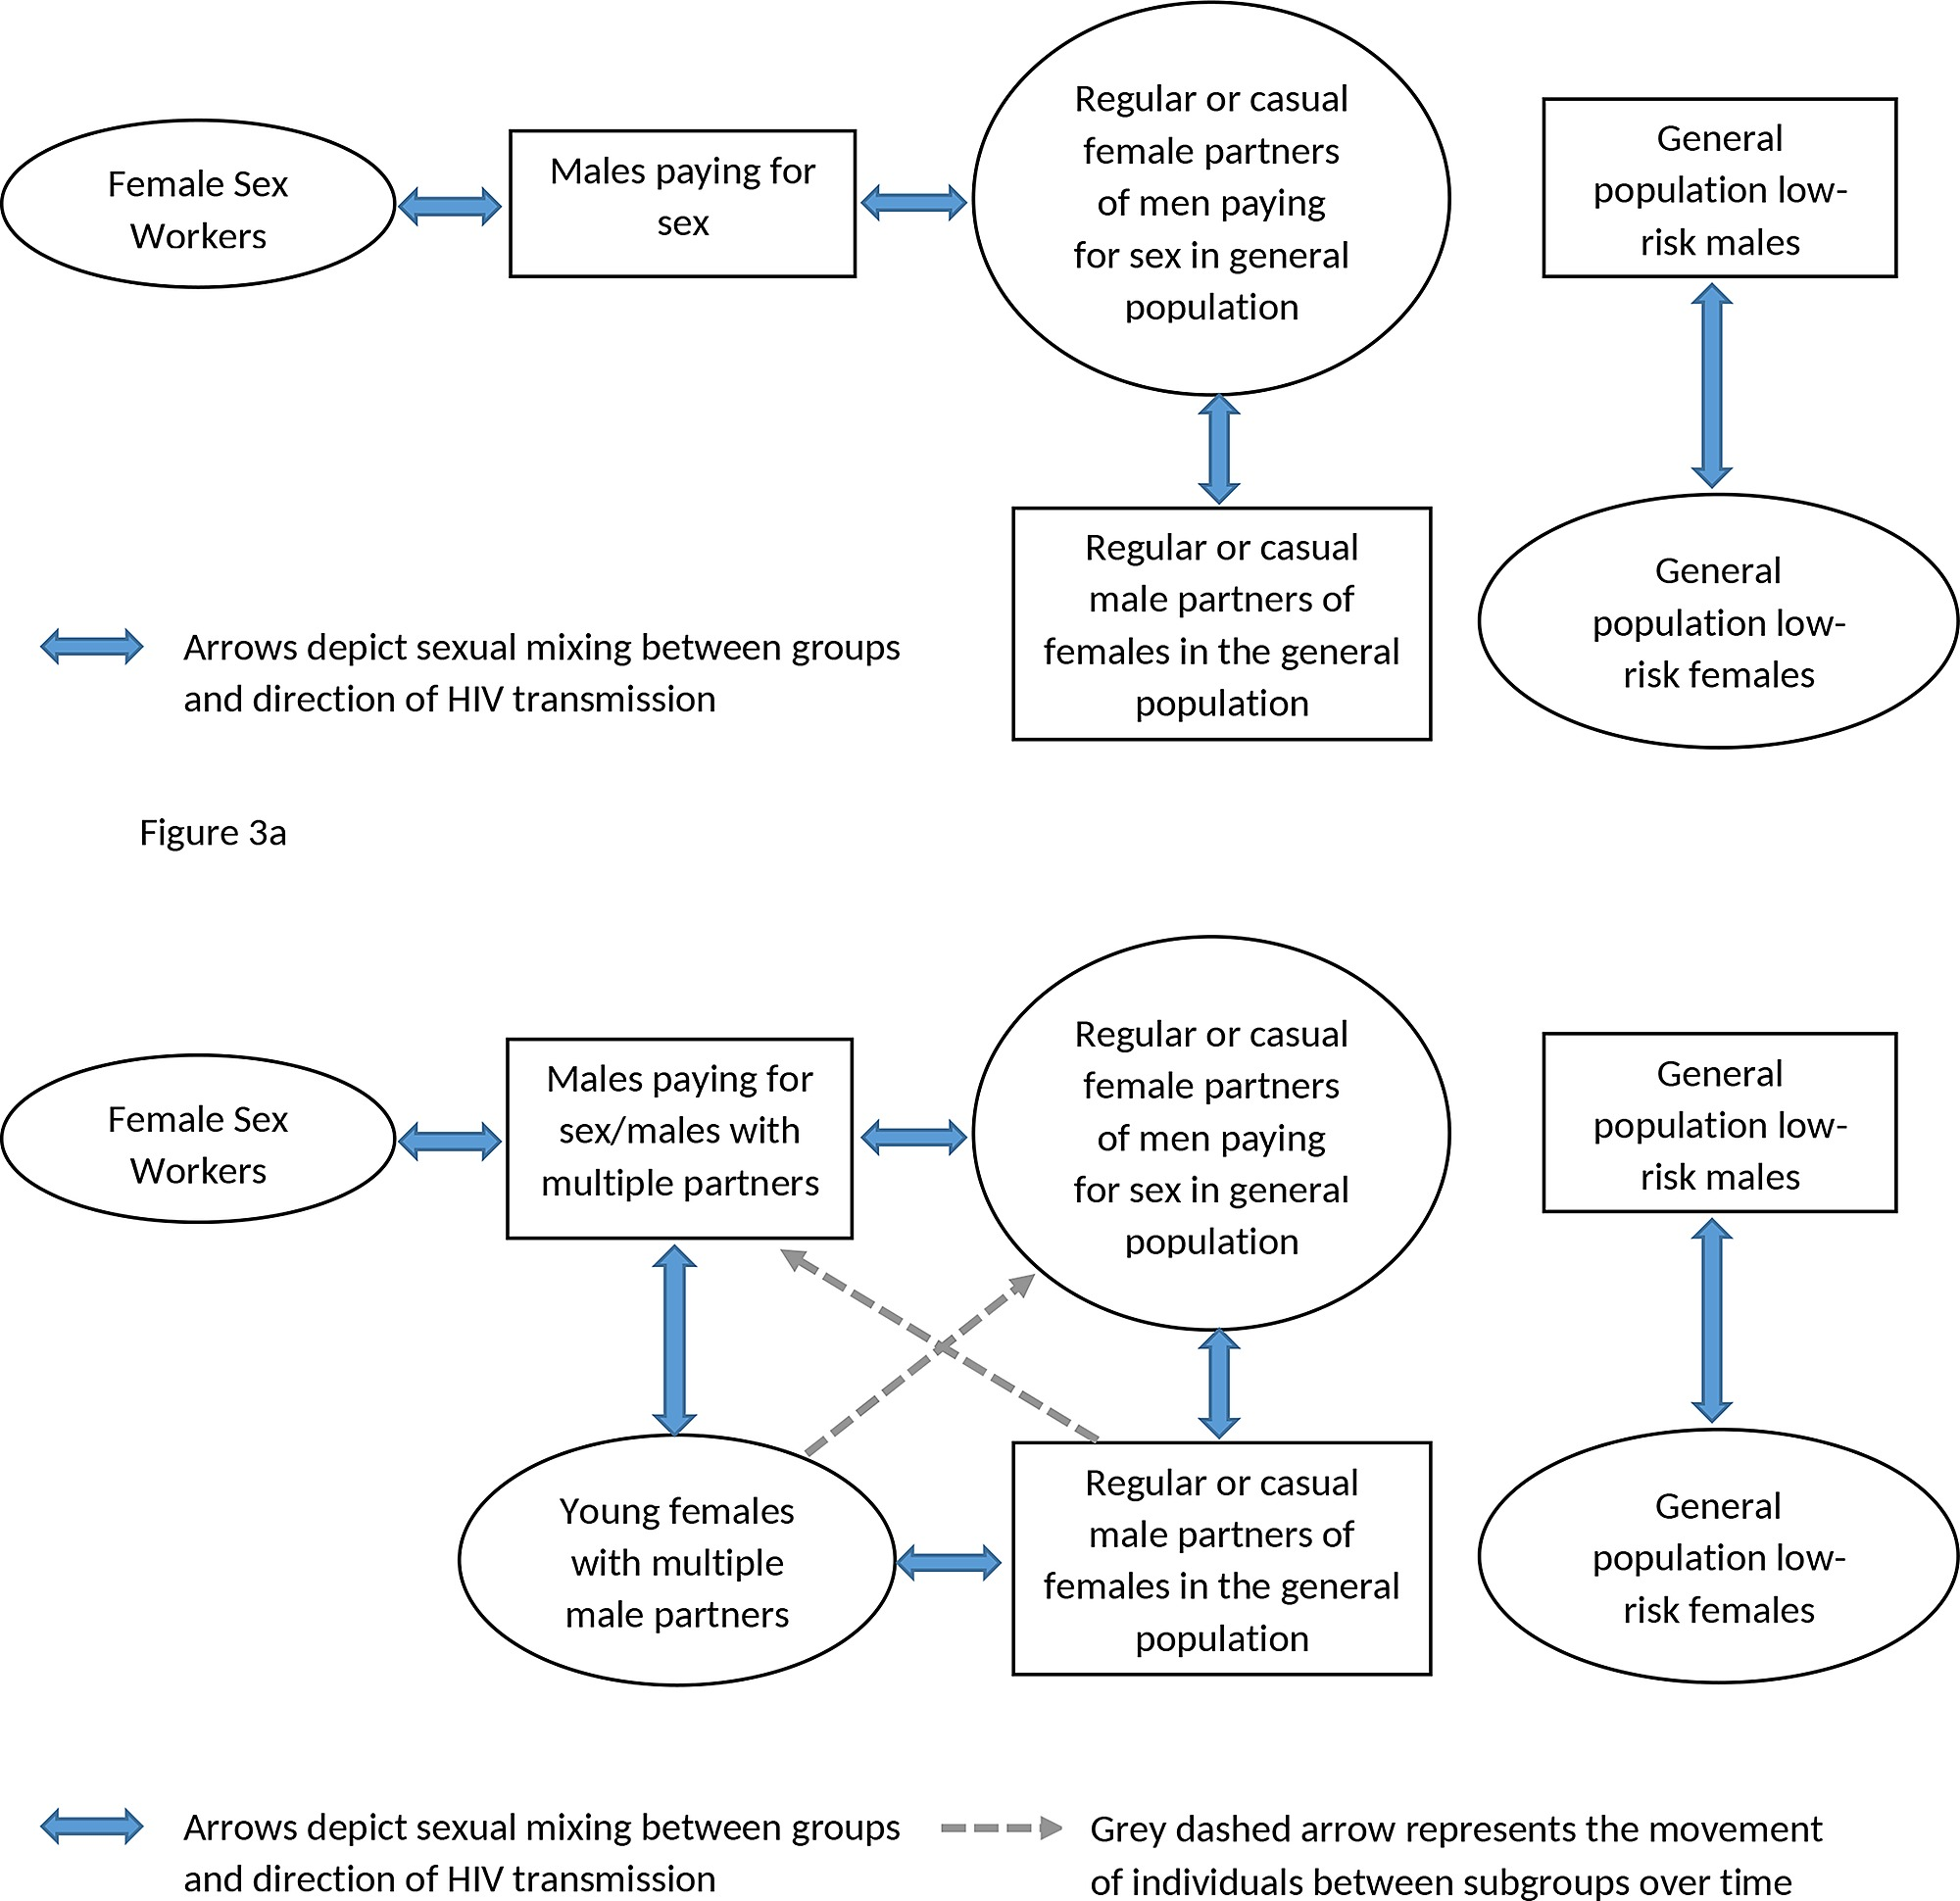 hight resolution of fig 3 a conceptual pathway of heterosexual hiv transmission from female sex workers to the general population in west africa and fig 3 b revised